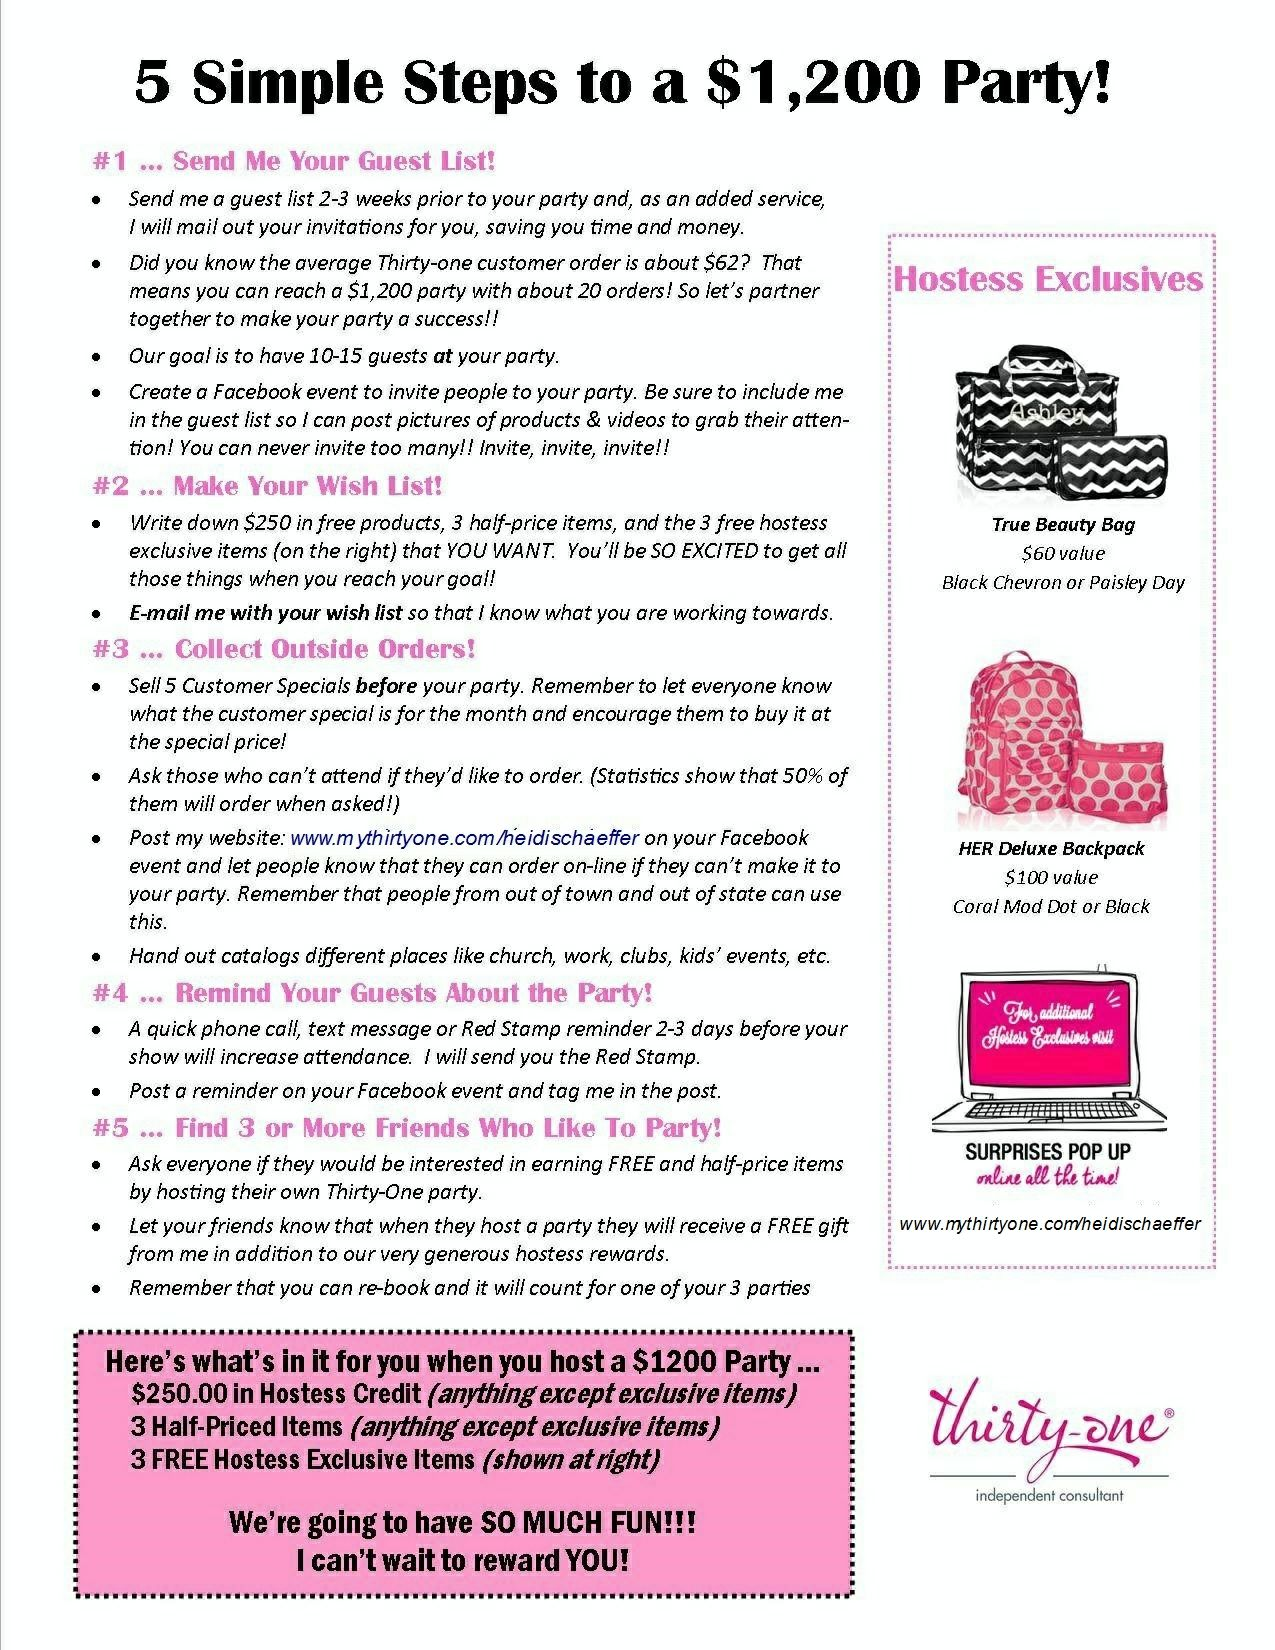 5 Simple Steps to having a $1200 Thirty-One Party   Thirty-one ...